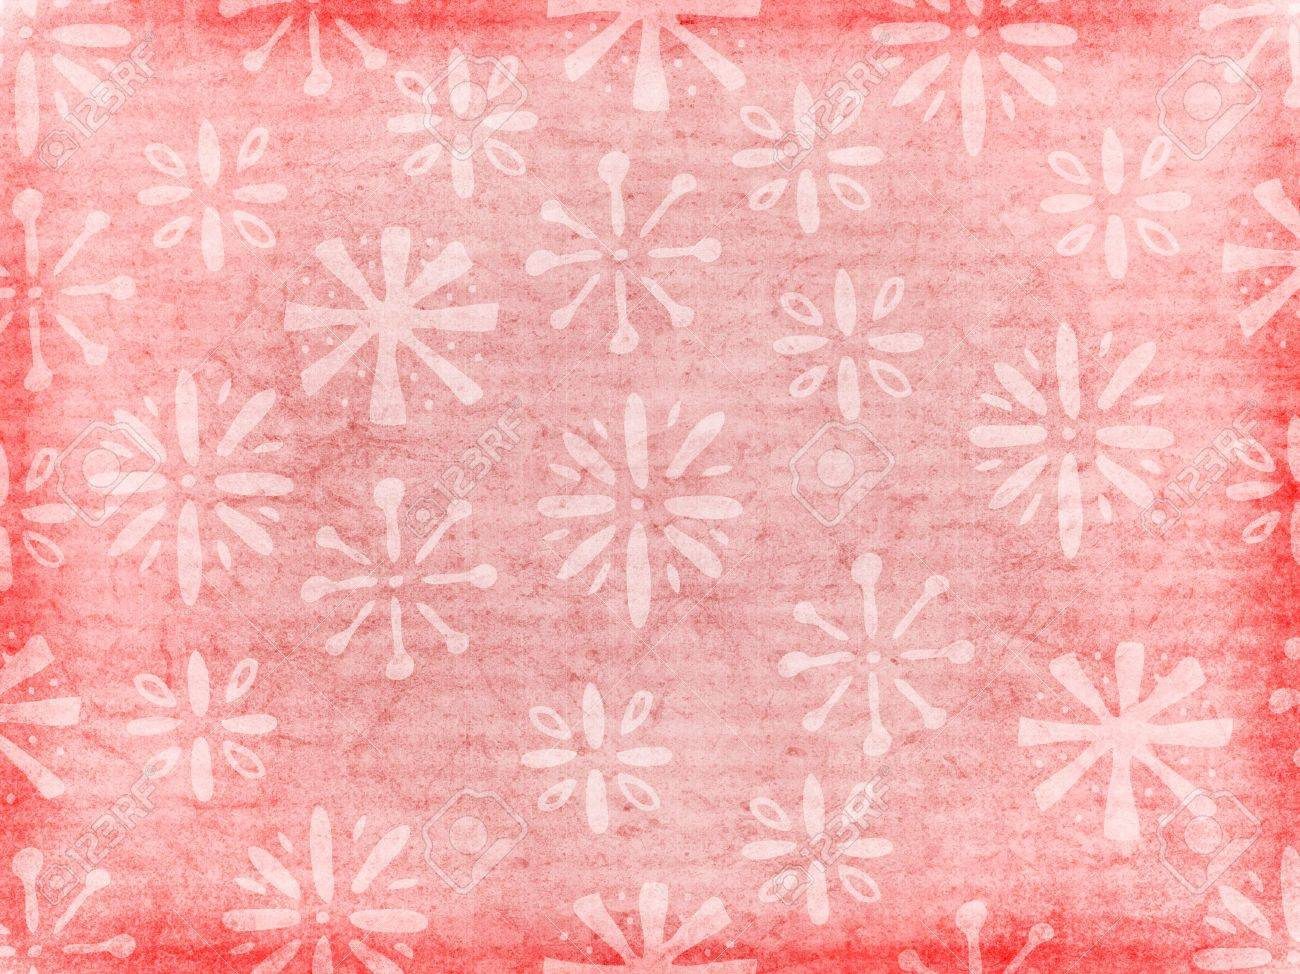 A Retro Style Background Texture Or Wallpaper With Floral Pattern